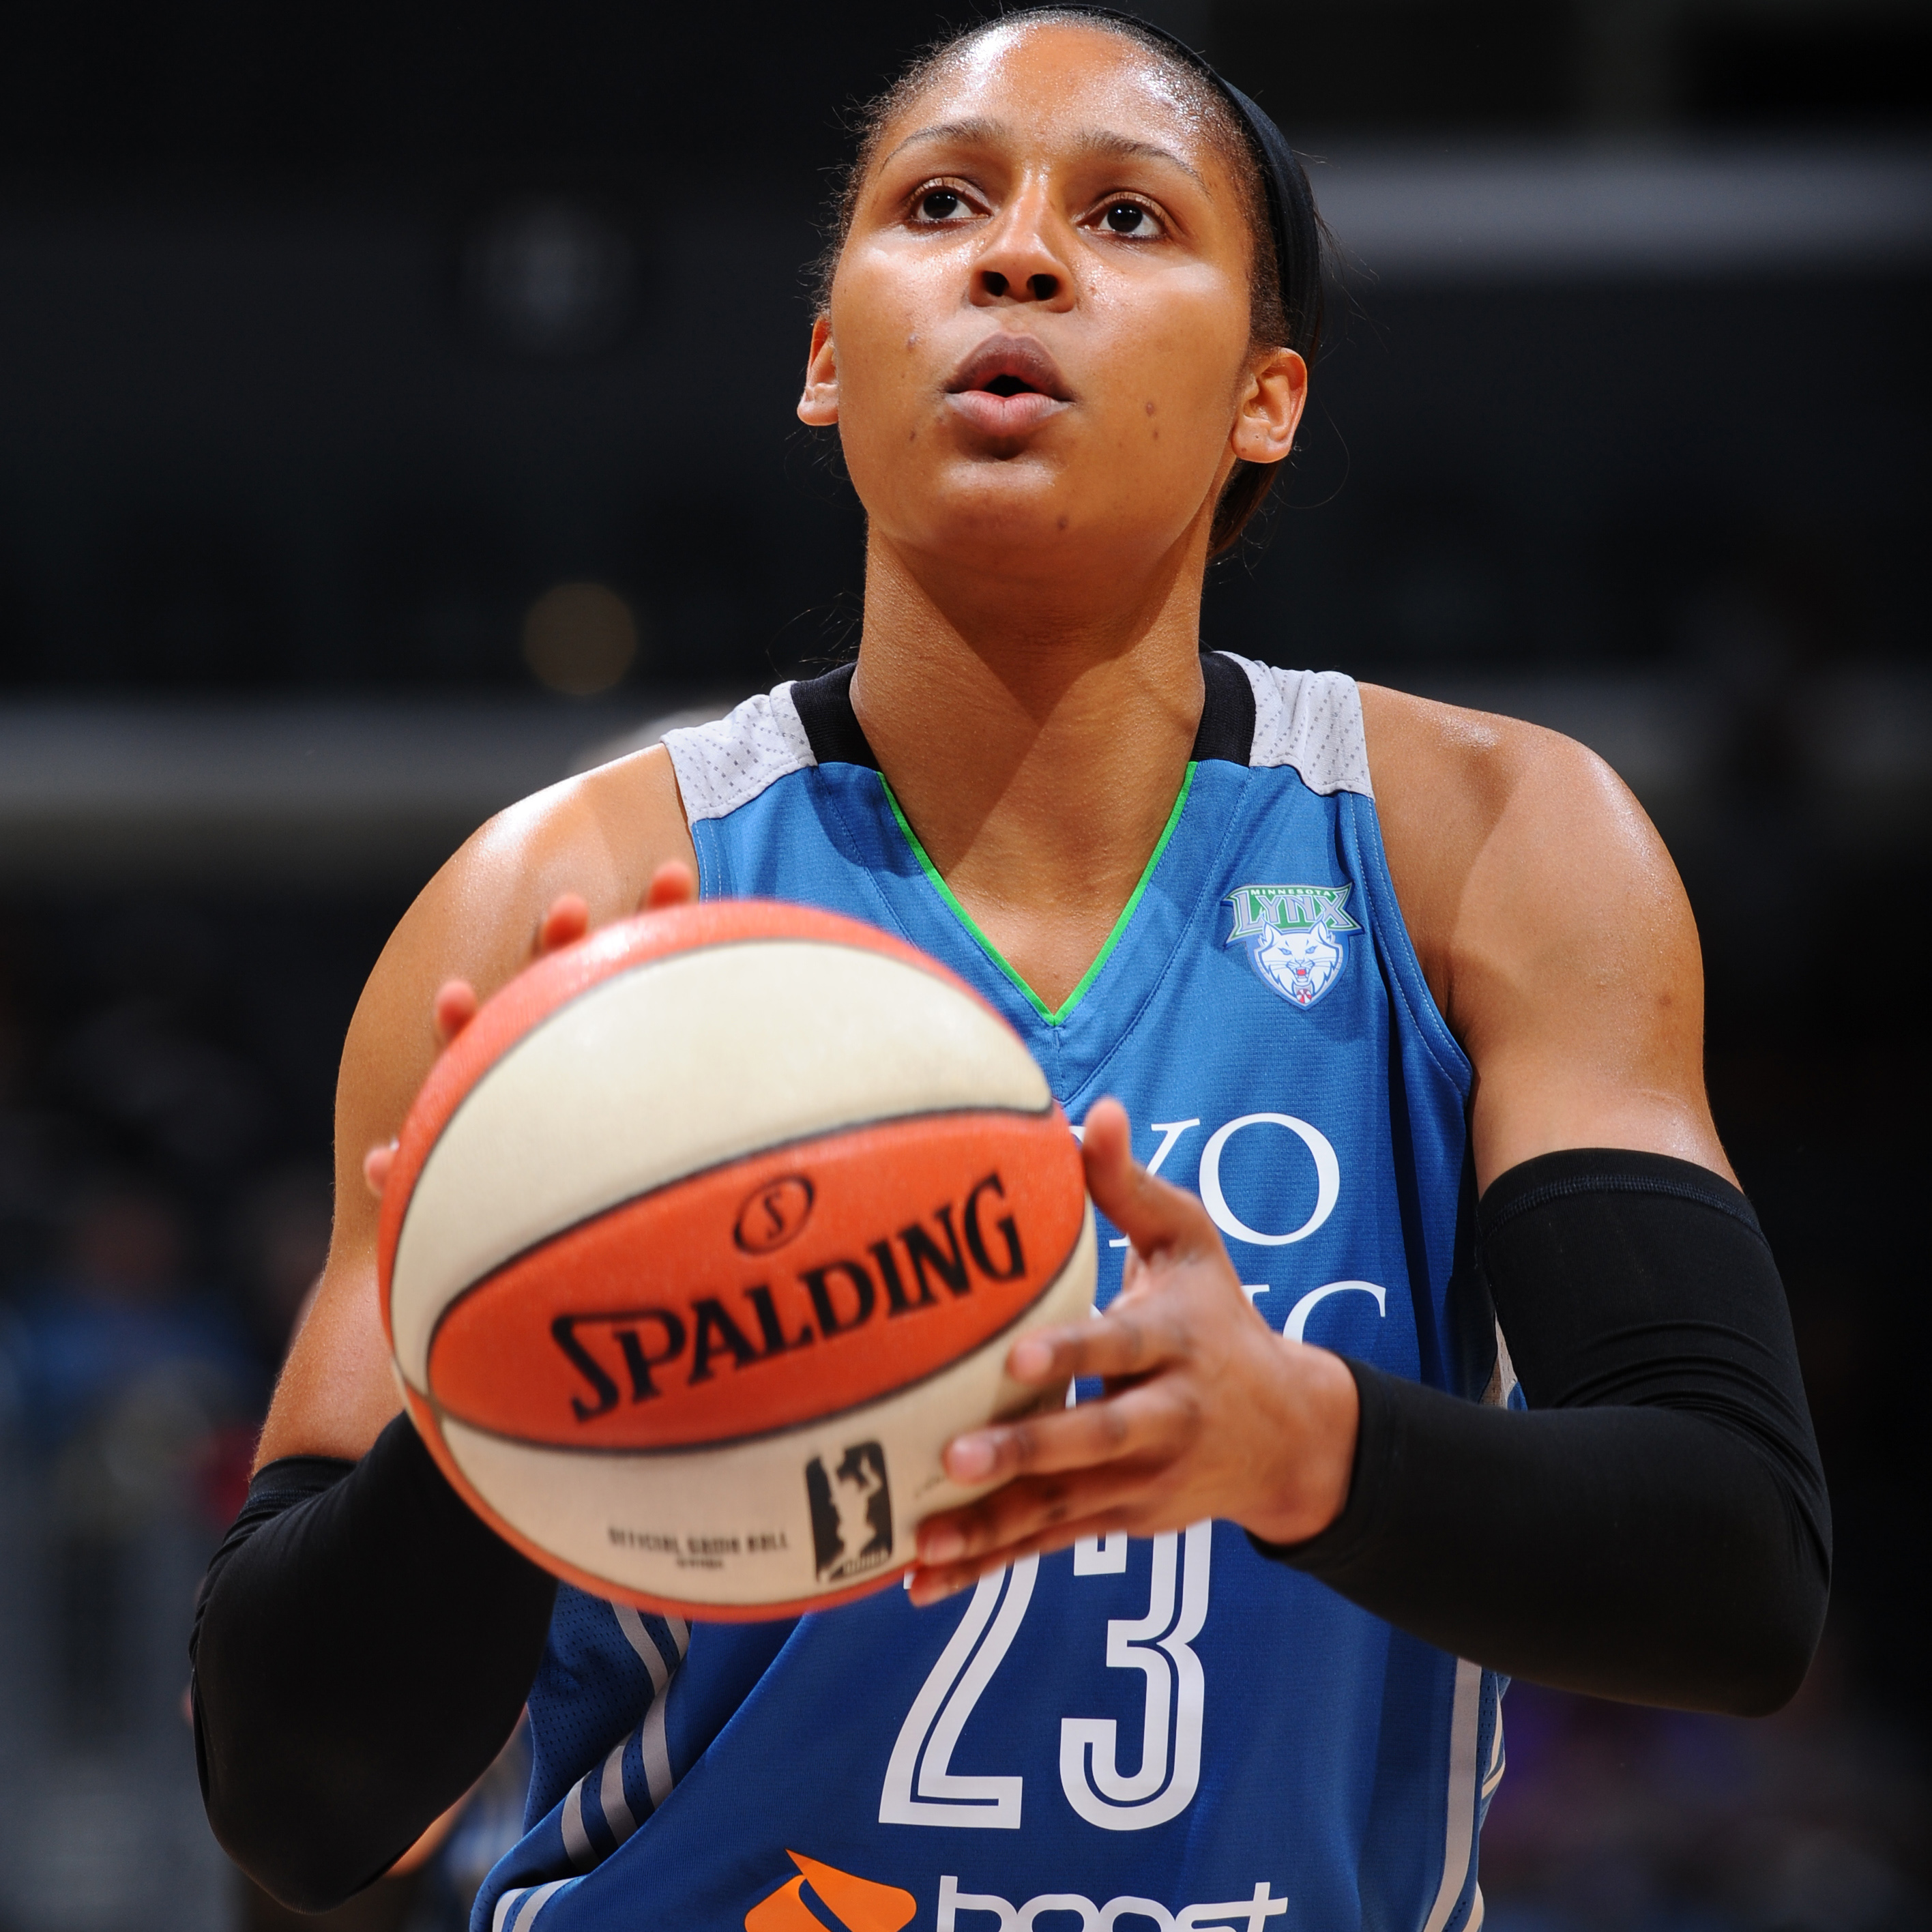 Maya Moore had a solid performance in the Lynx win over the Sparks, scoring 22 points to go with four rebounds and four assists.